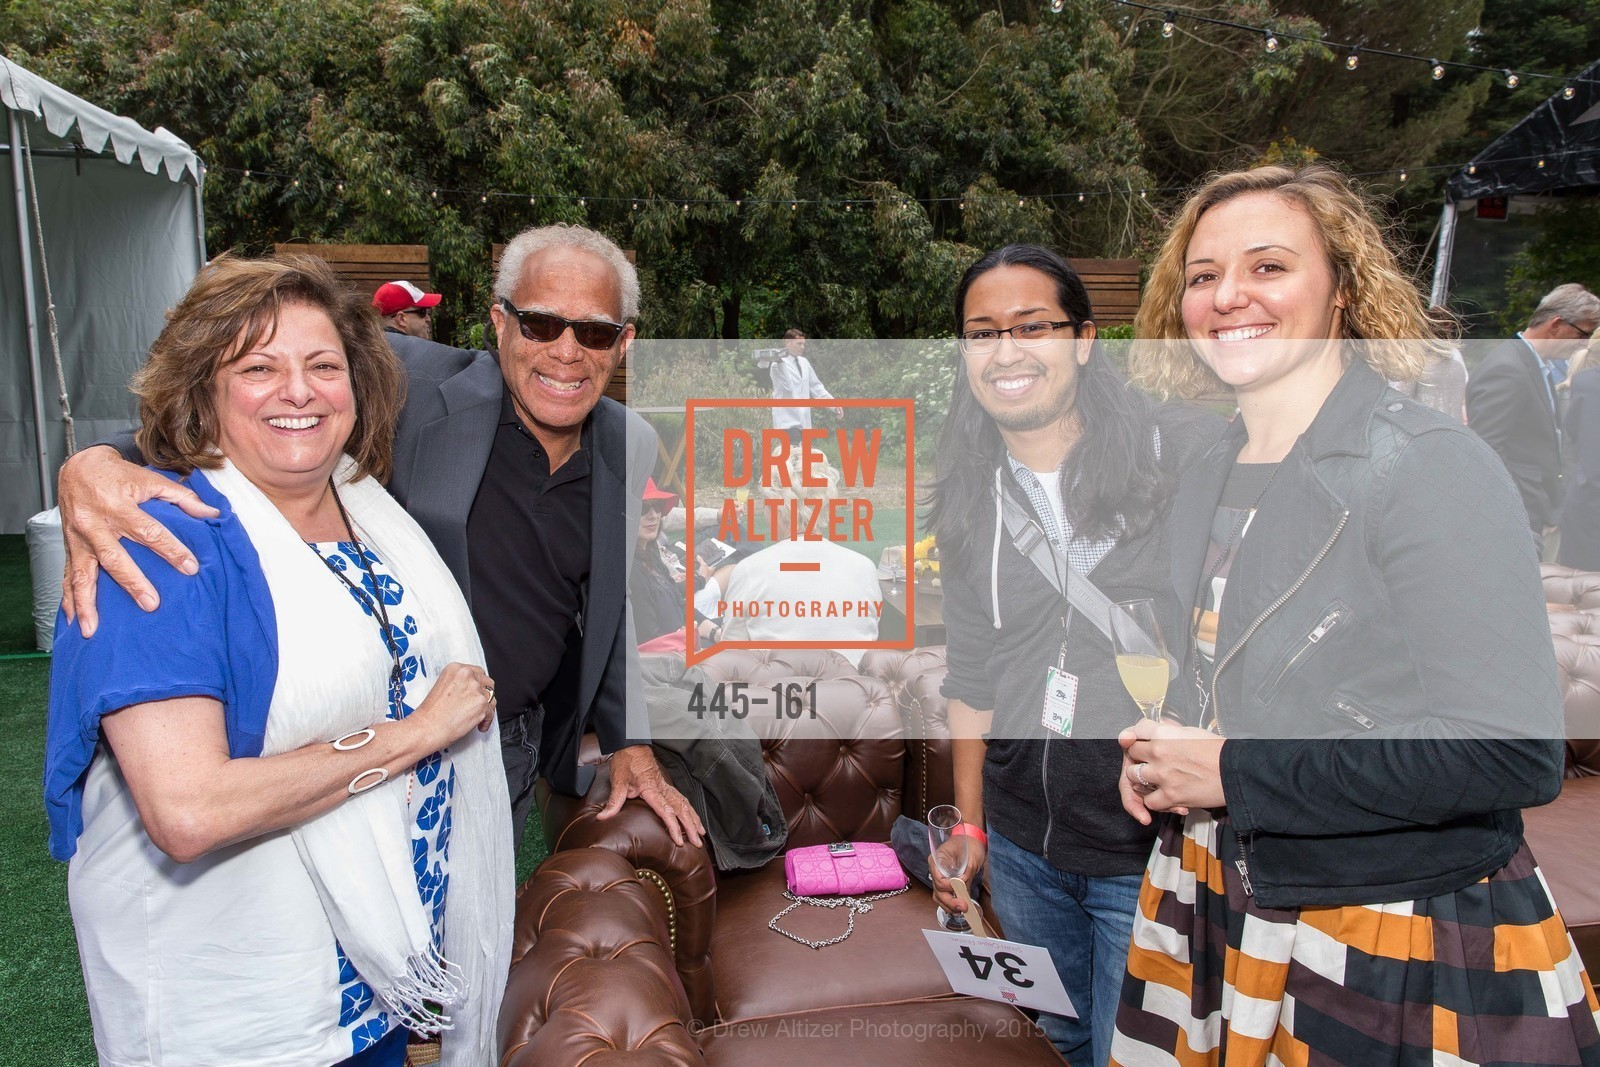 Laura Aldini, Sam Ferguson, Aldo King, Jacqueline Jirka, THE BIG PICNIC Kicking off  2015 Stern Grove Season, Stern Grove. 2750 19th Avenue, June 14th, 2015,Drew Altizer, Drew Altizer Photography, full-service agency, private events, San Francisco photographer, photographer california